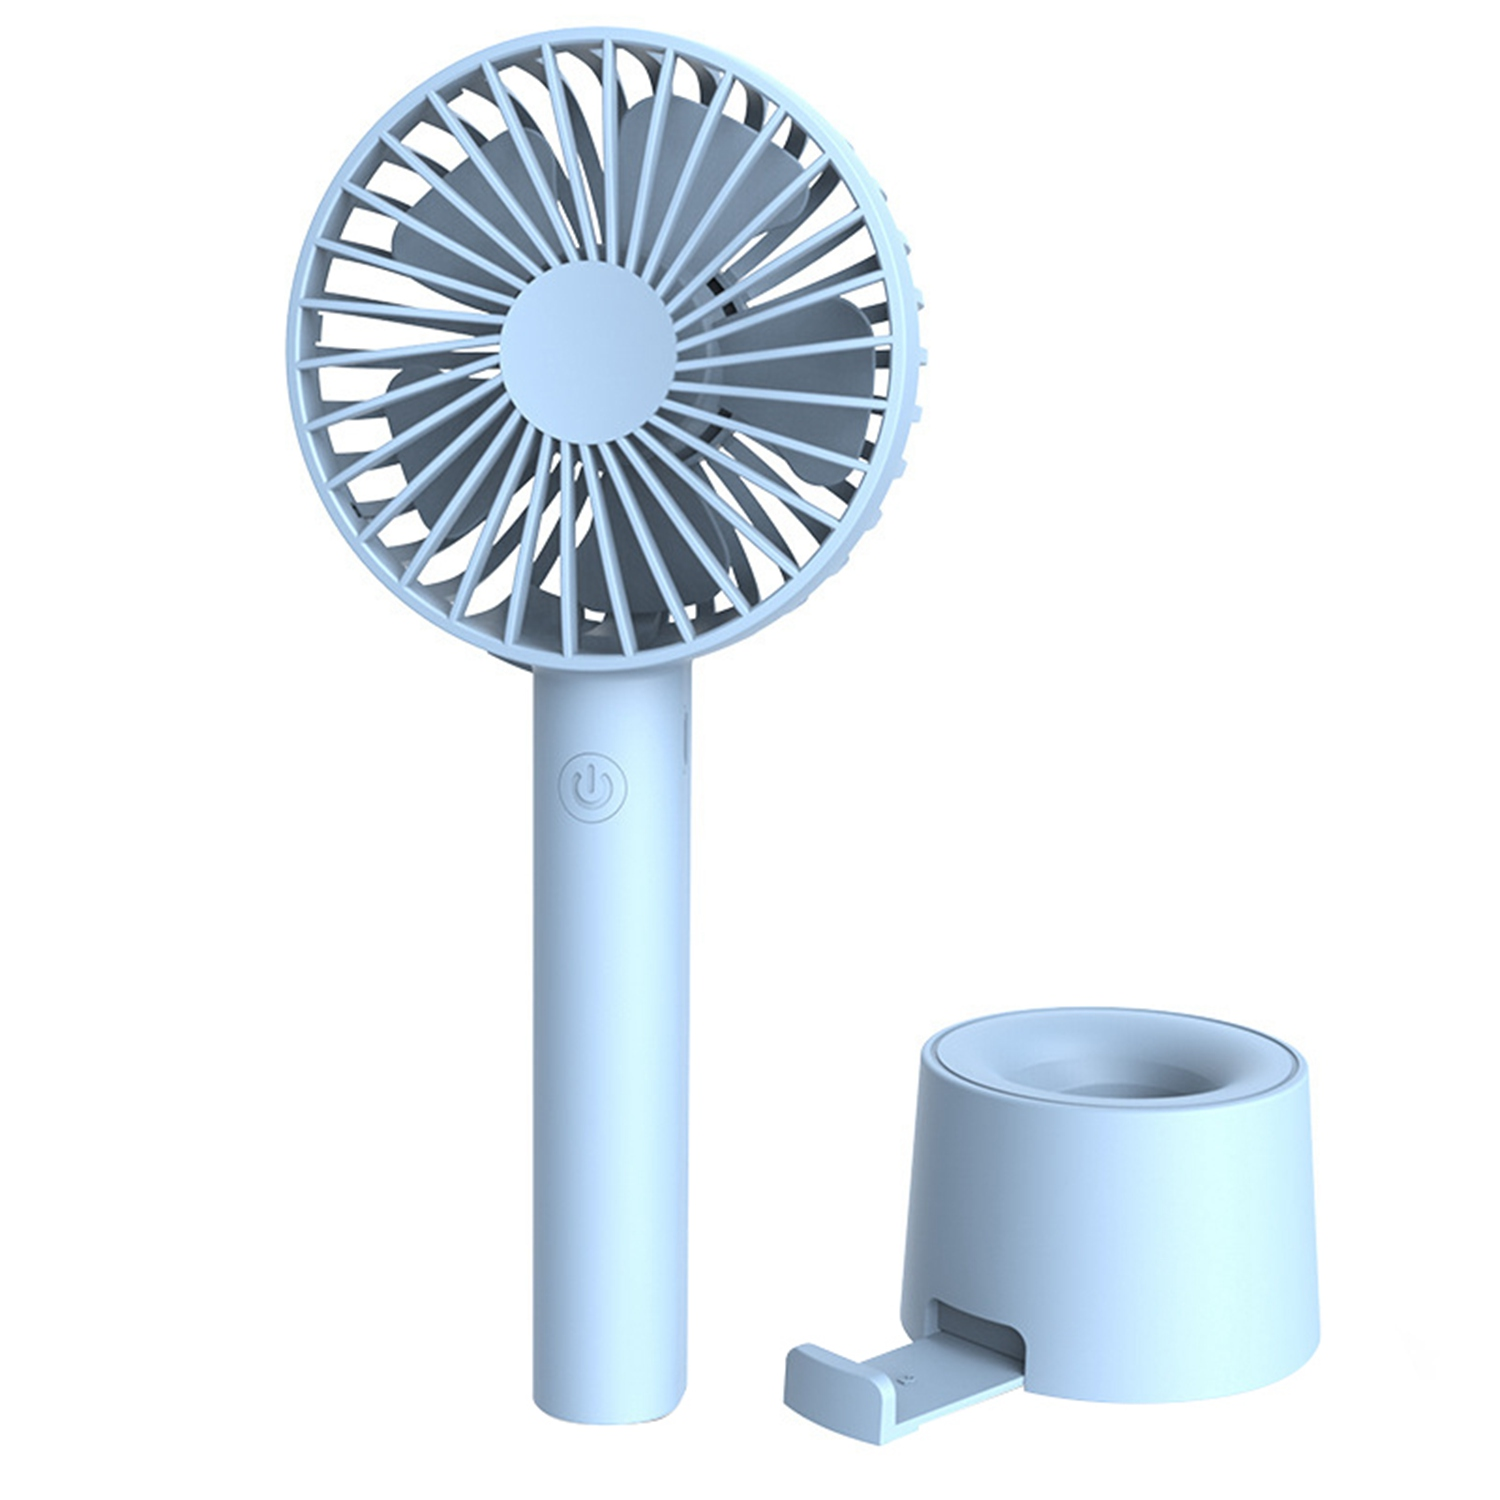 Portable Usb Rechargeable Mini Fan Suitable For Outdoor Handheld Silent Small Fan|Fans| |  - title=